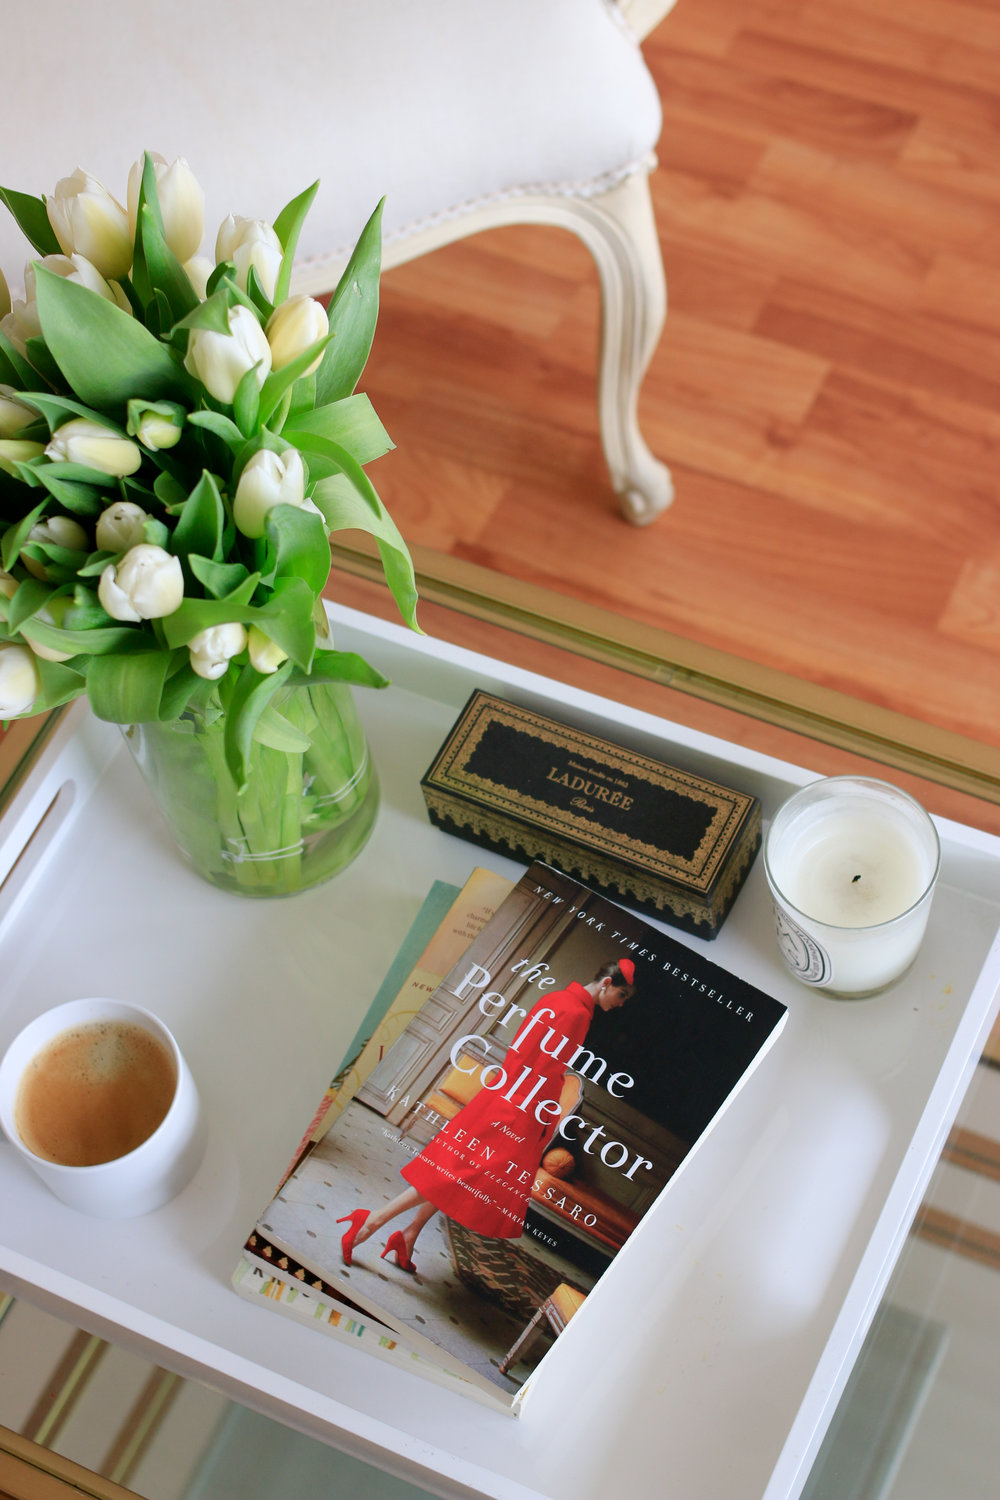 The Perfume Collector, The Every Day Parisian Book Club pick of the month